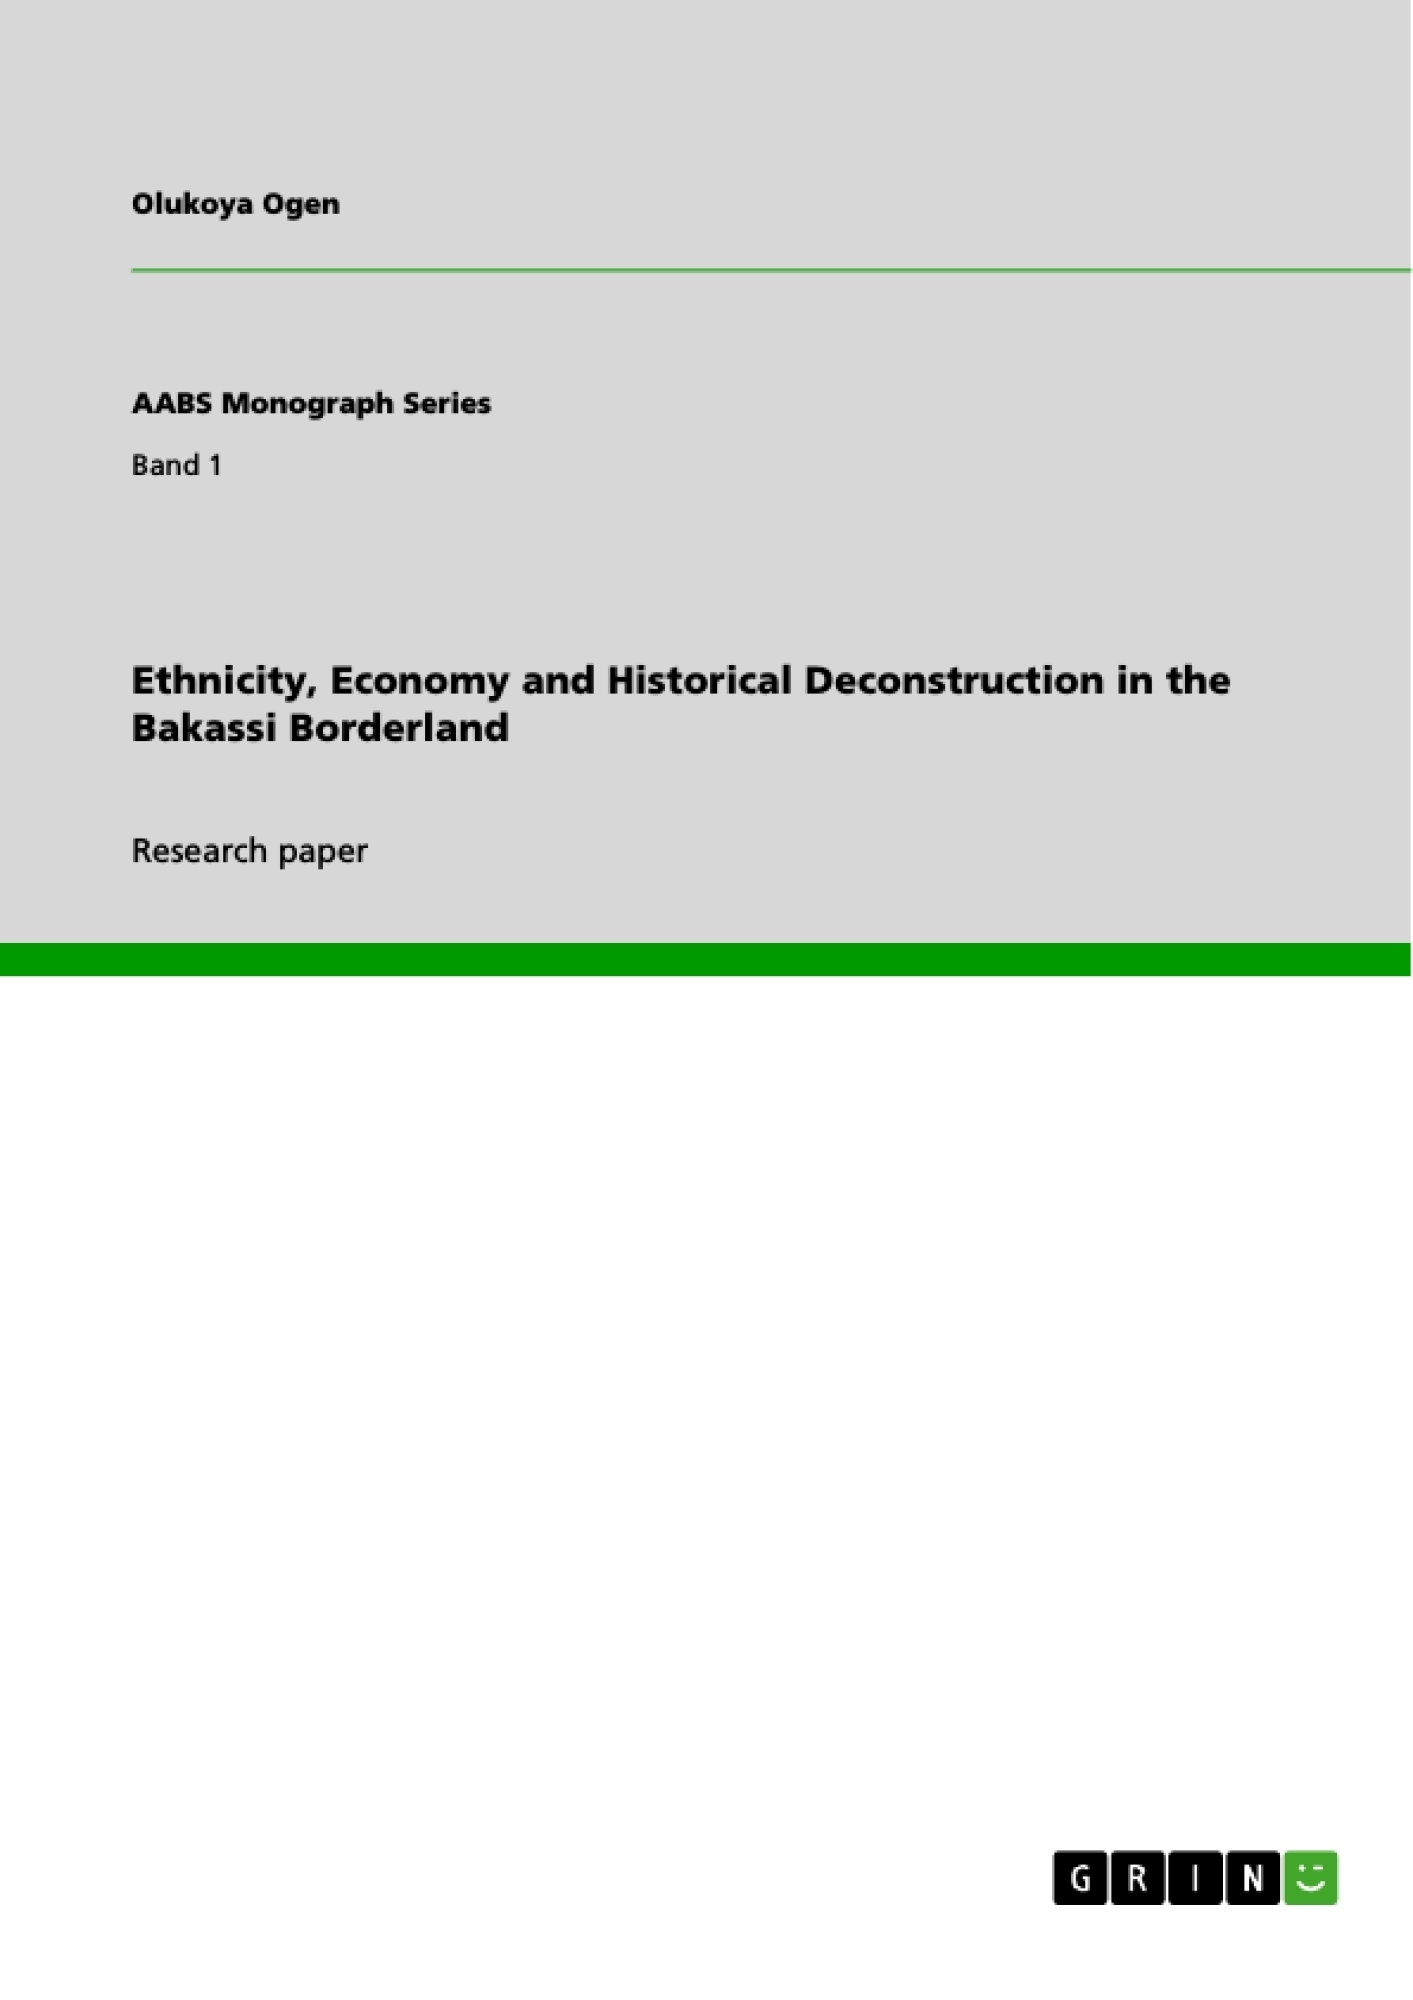 ethnicity economy and historical deconstruction in the bakassi ethnicity economy and historical deconstruction in the bakassi publish your master s thesis bachelor s thesis essay or term paper